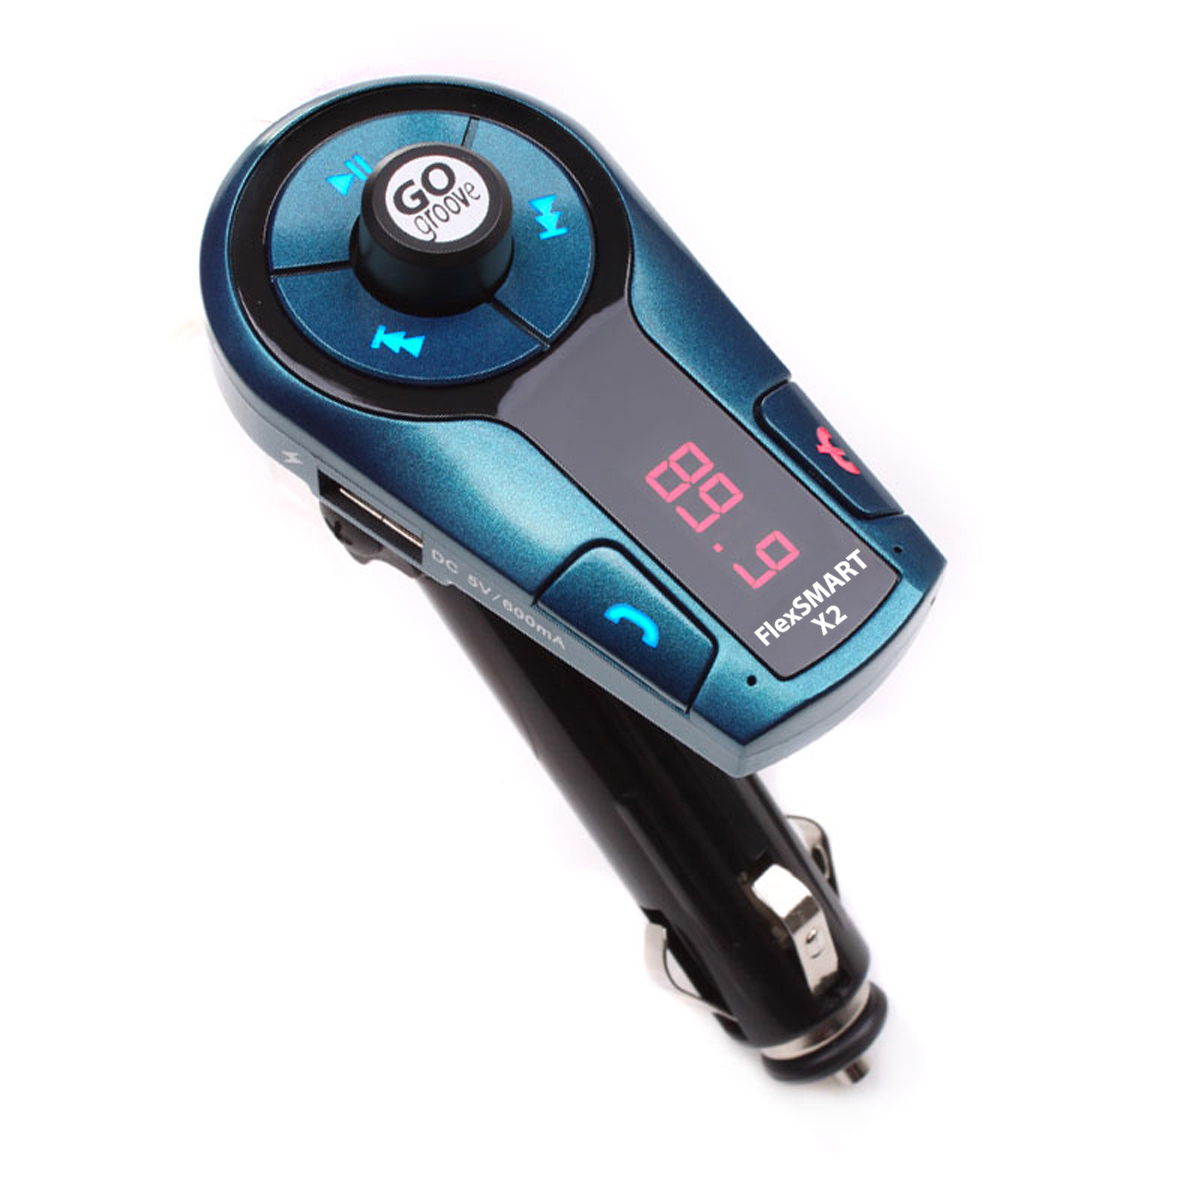 GOgroove FlexSMART X2 Mini Bluetooth FM Transmitter Car Kit (MANUFACTURER REFURBISHED) with Hands-Free Calling , USB Charging  - Compatible with iPhone , HTC , Samsung Galaxy and More Smartphones